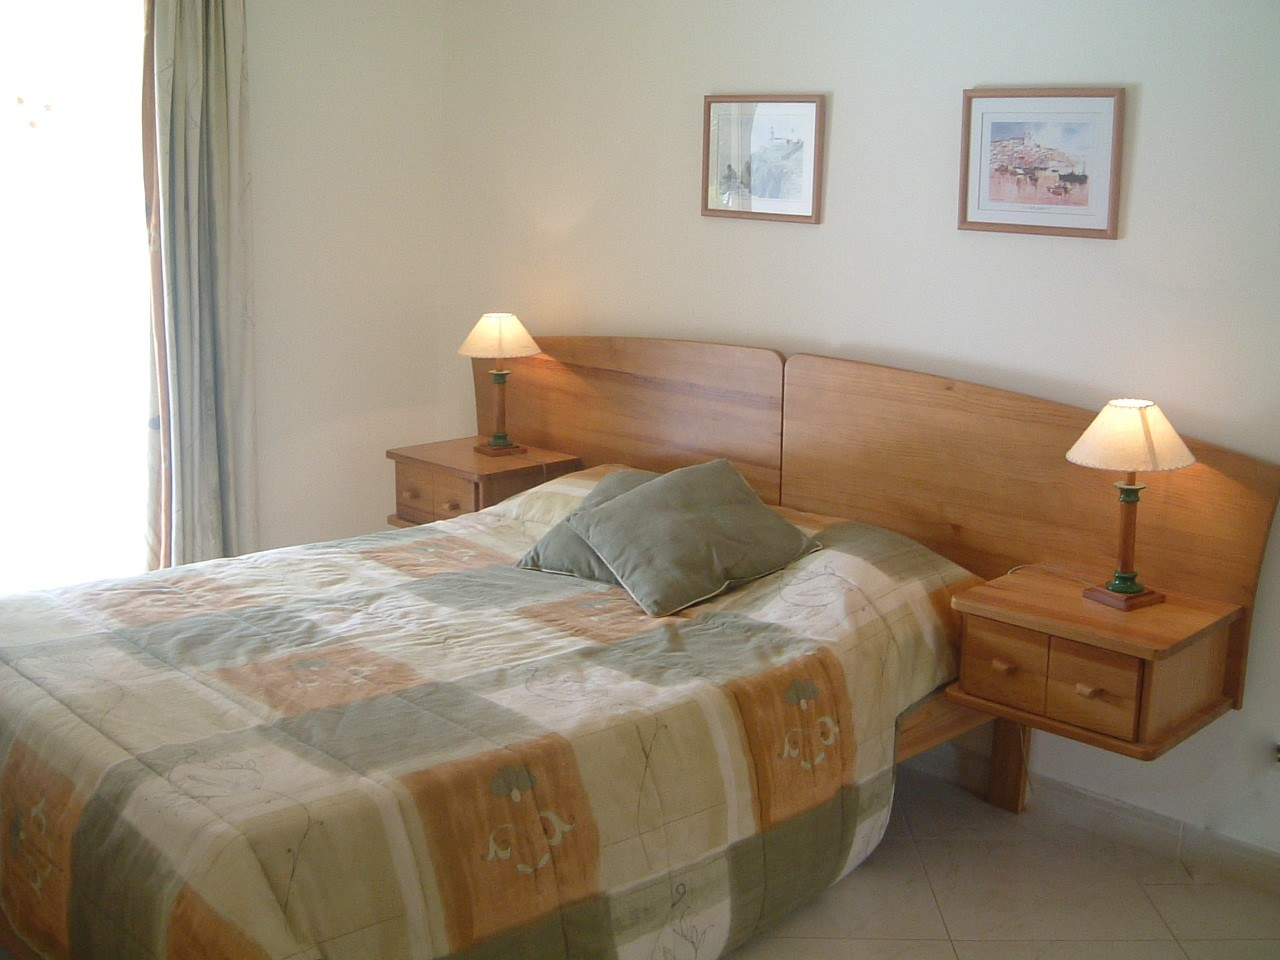 Alojamento - Apartamentos - Villa T3, Sitio dos Castelos, Sta.Barbara de Nexe – Algarve, Very nice and quiet place near of the beaches. - ID 5845